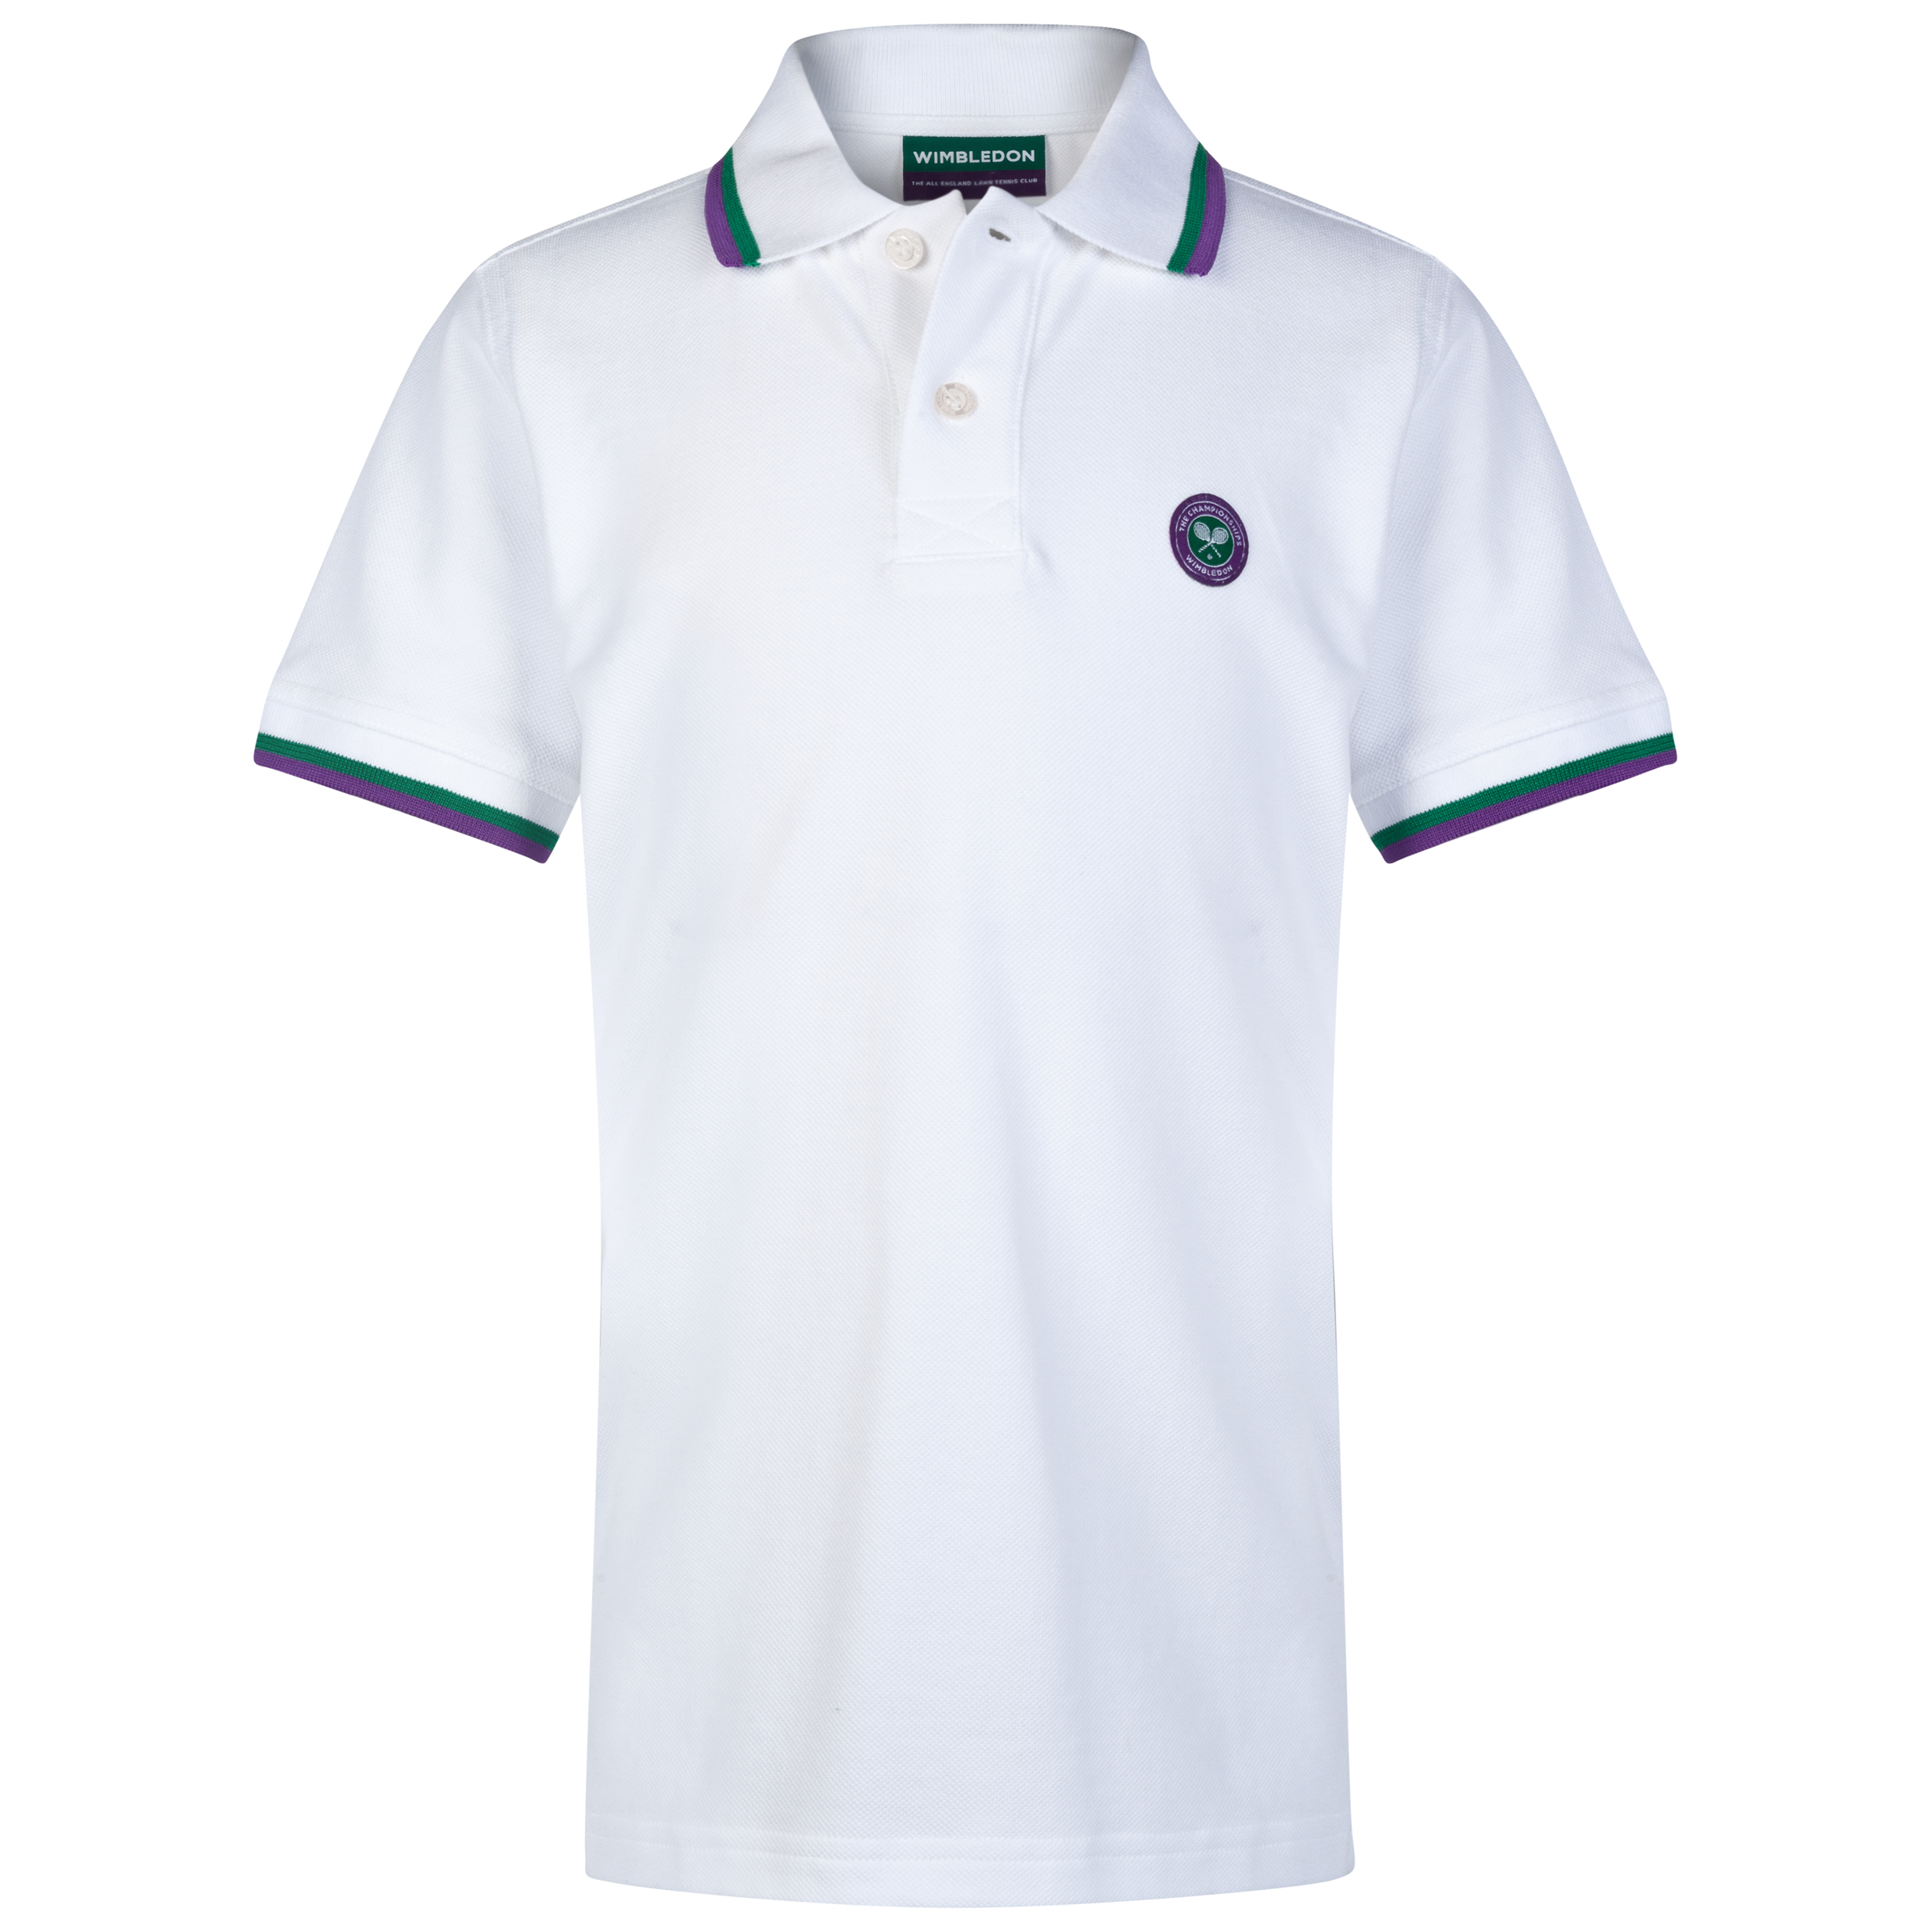 Wimbledon Pique Polo Shirt - Kids White